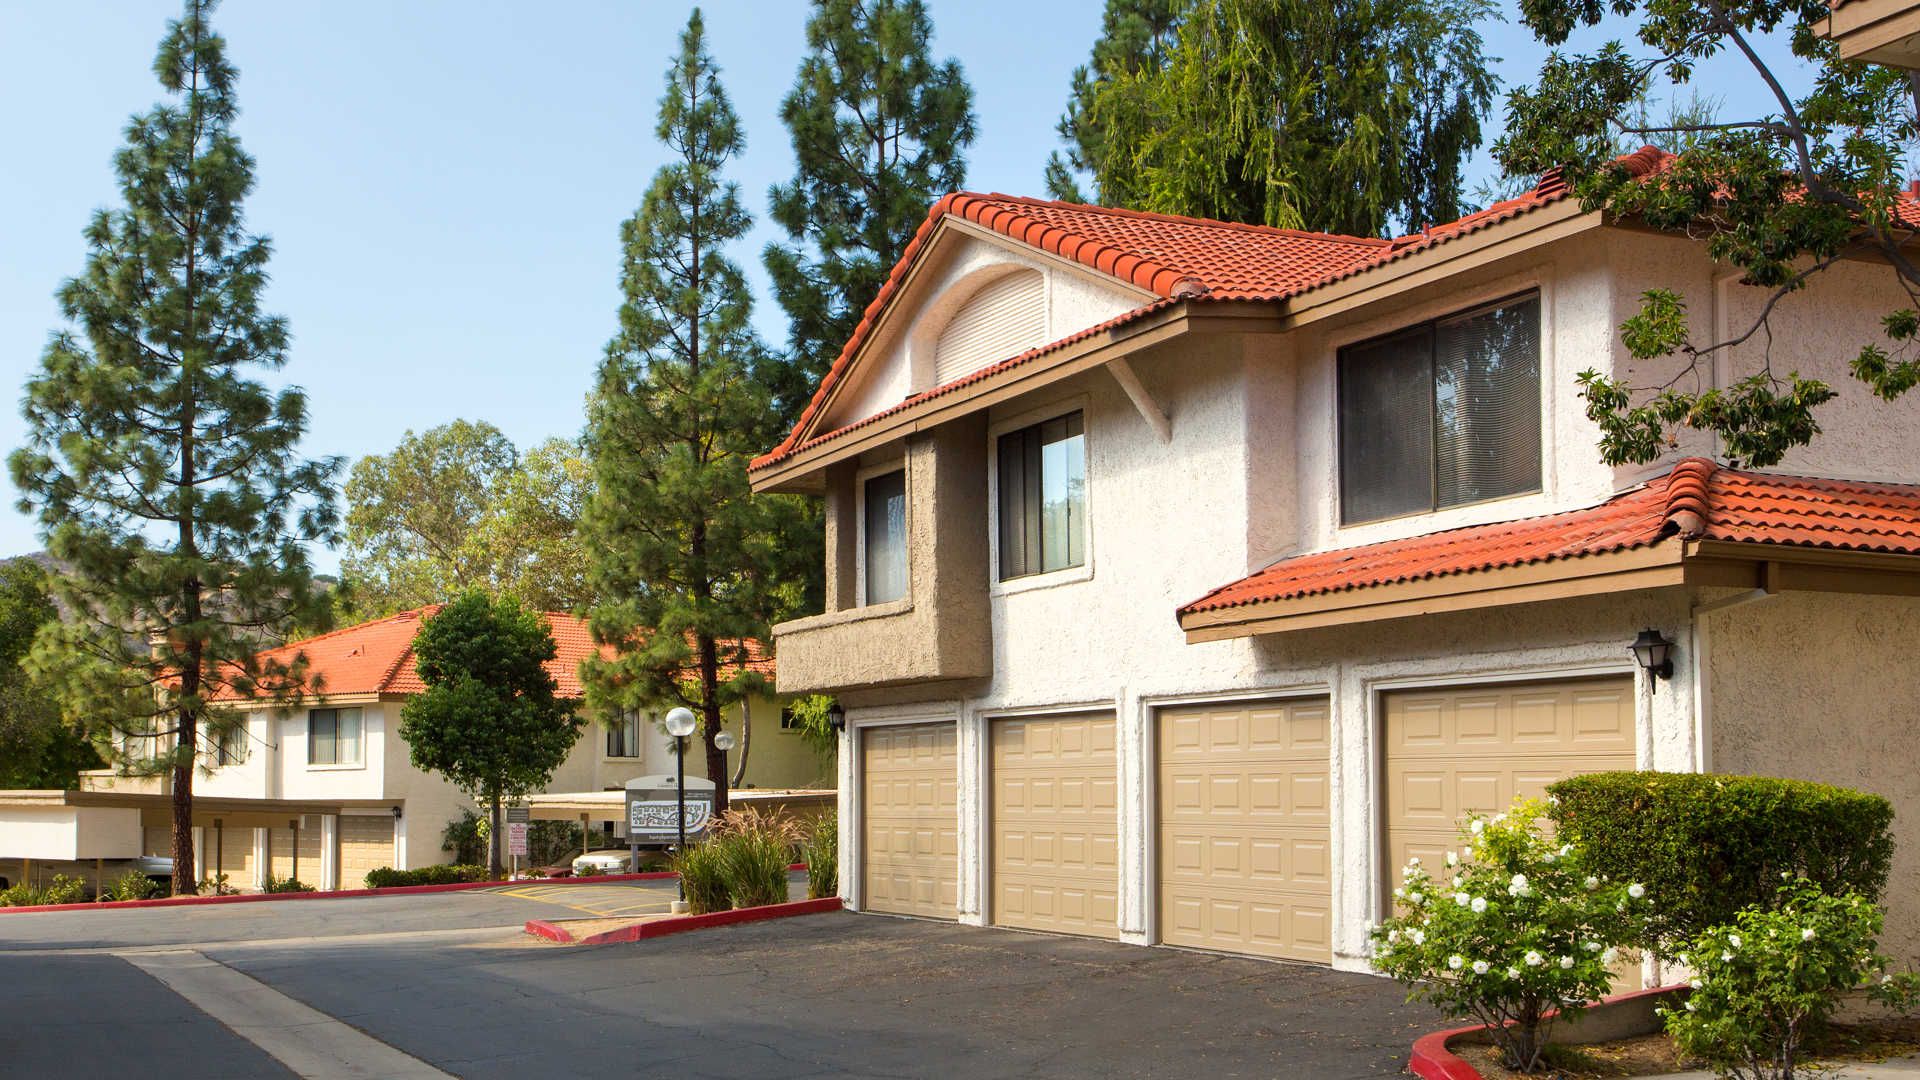 Captivating Country Oaks Apartments   Agoura Hills   5813 Hickory Drive |  EquityApartments.com